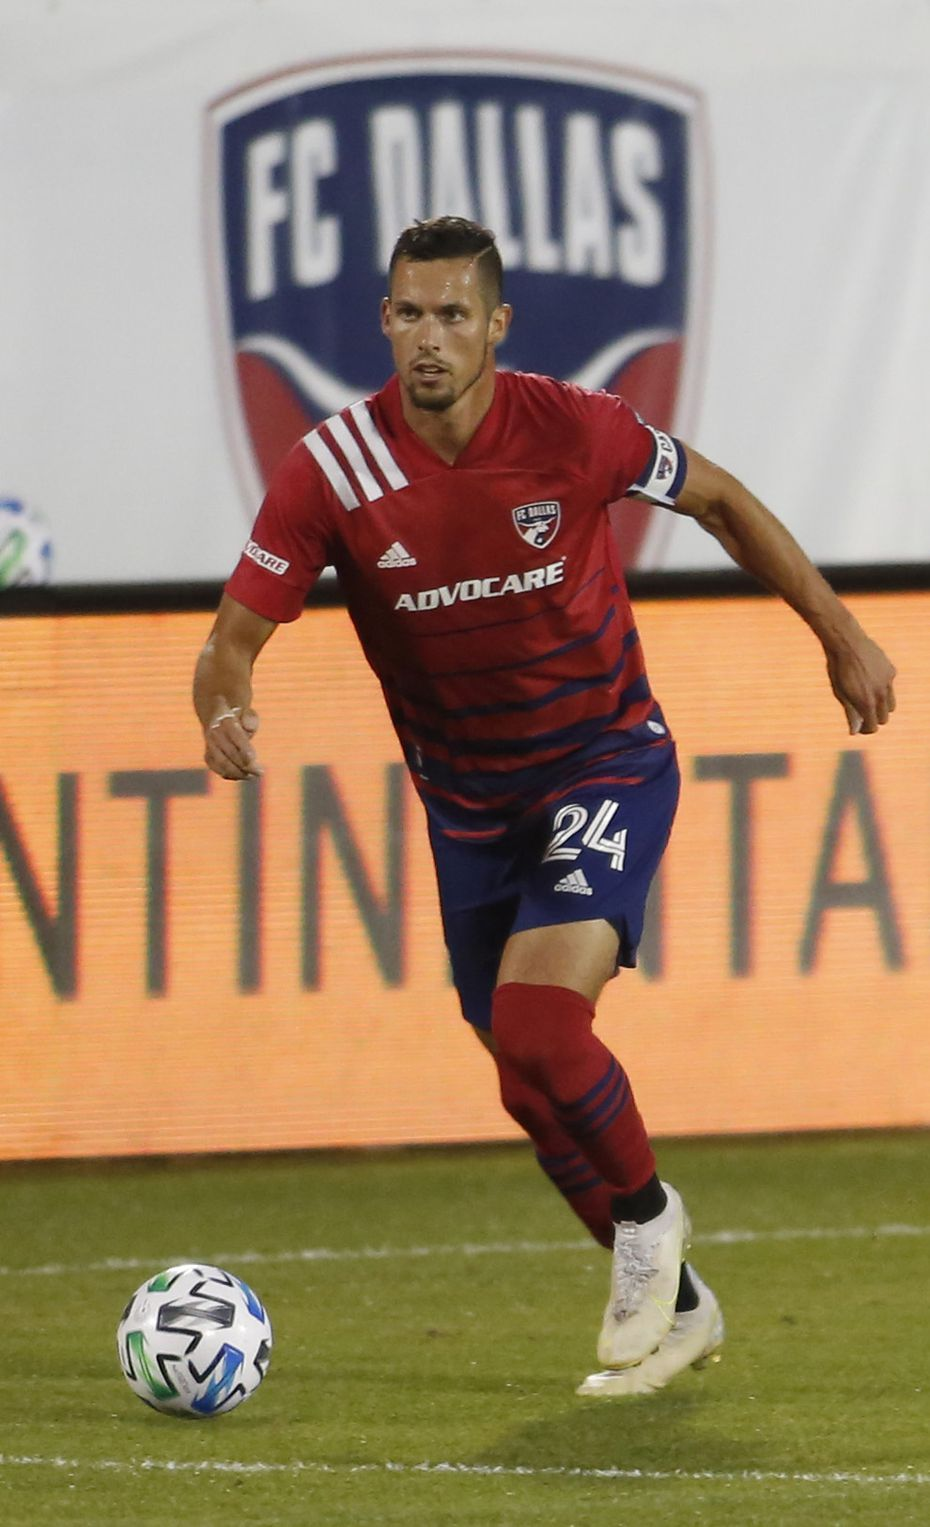 FC Dallas defender Matt Hedges (24) looks for an open team member during first half action against Inter Miami. The two teams played their Major League Soccer match at Toyota Stadium in Frisco on October 28, 2020. (Steve Hamm/ Special Contributor)